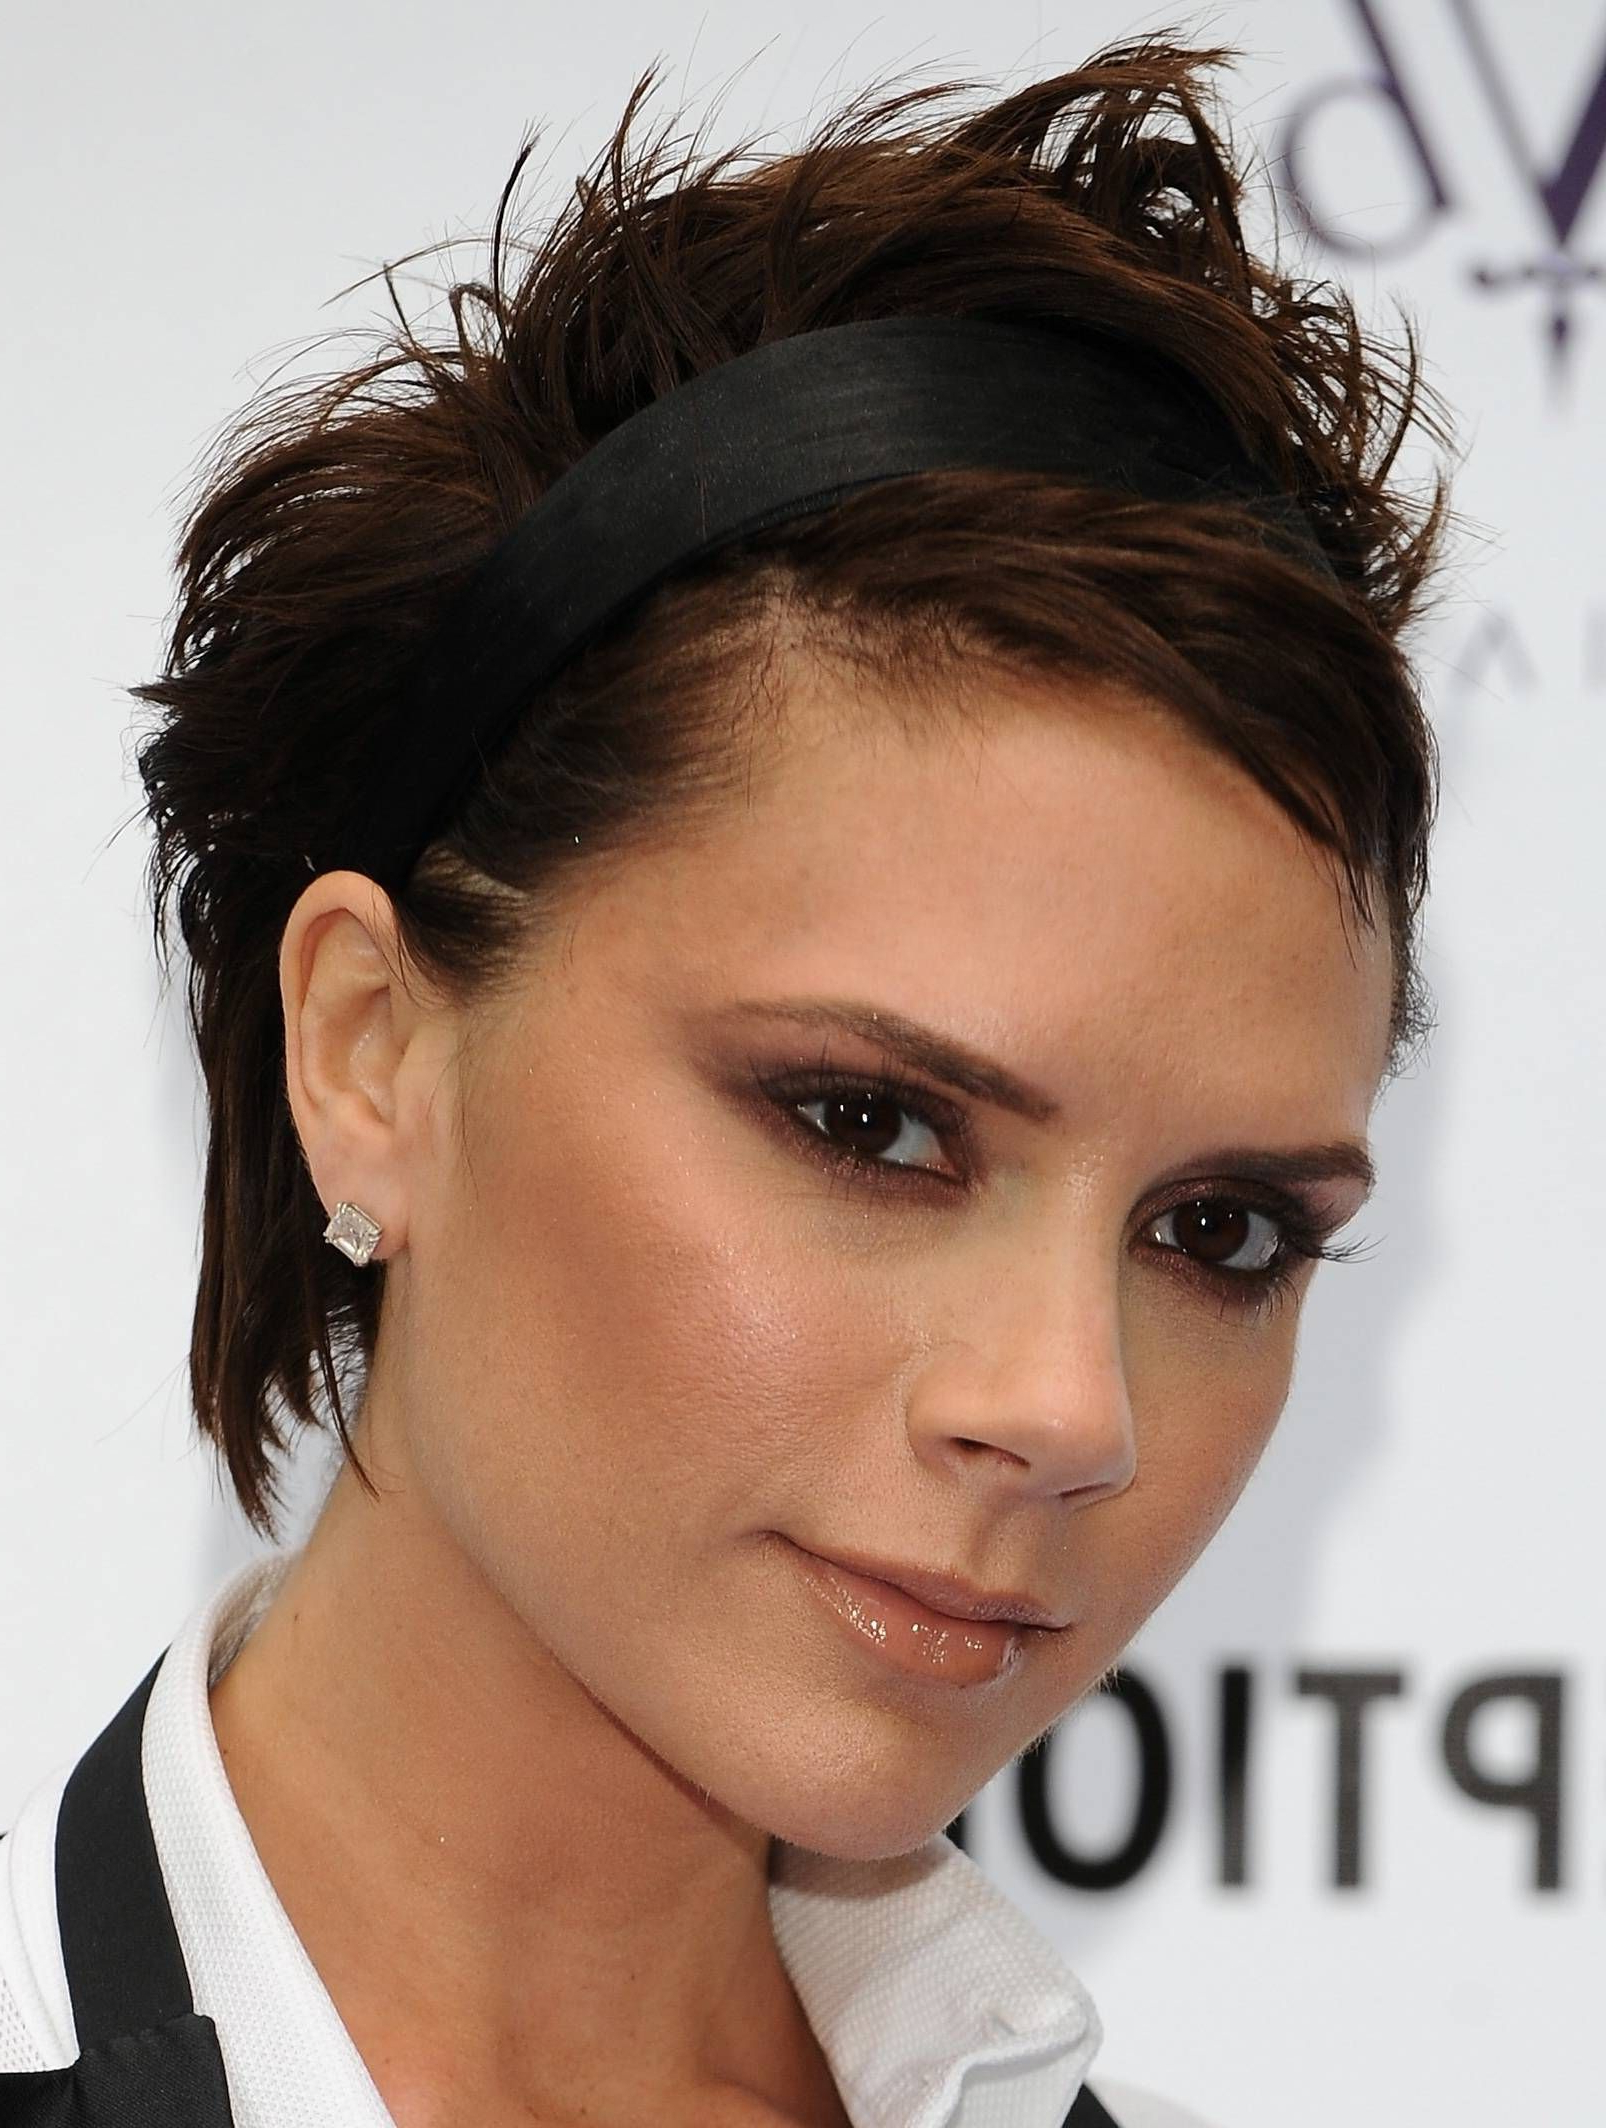 Victoria Beckham Hair Over The Years | Victoria Beckham, Beckham And Throughout Victoria Beckham Short Haircuts (View 12 of 25)